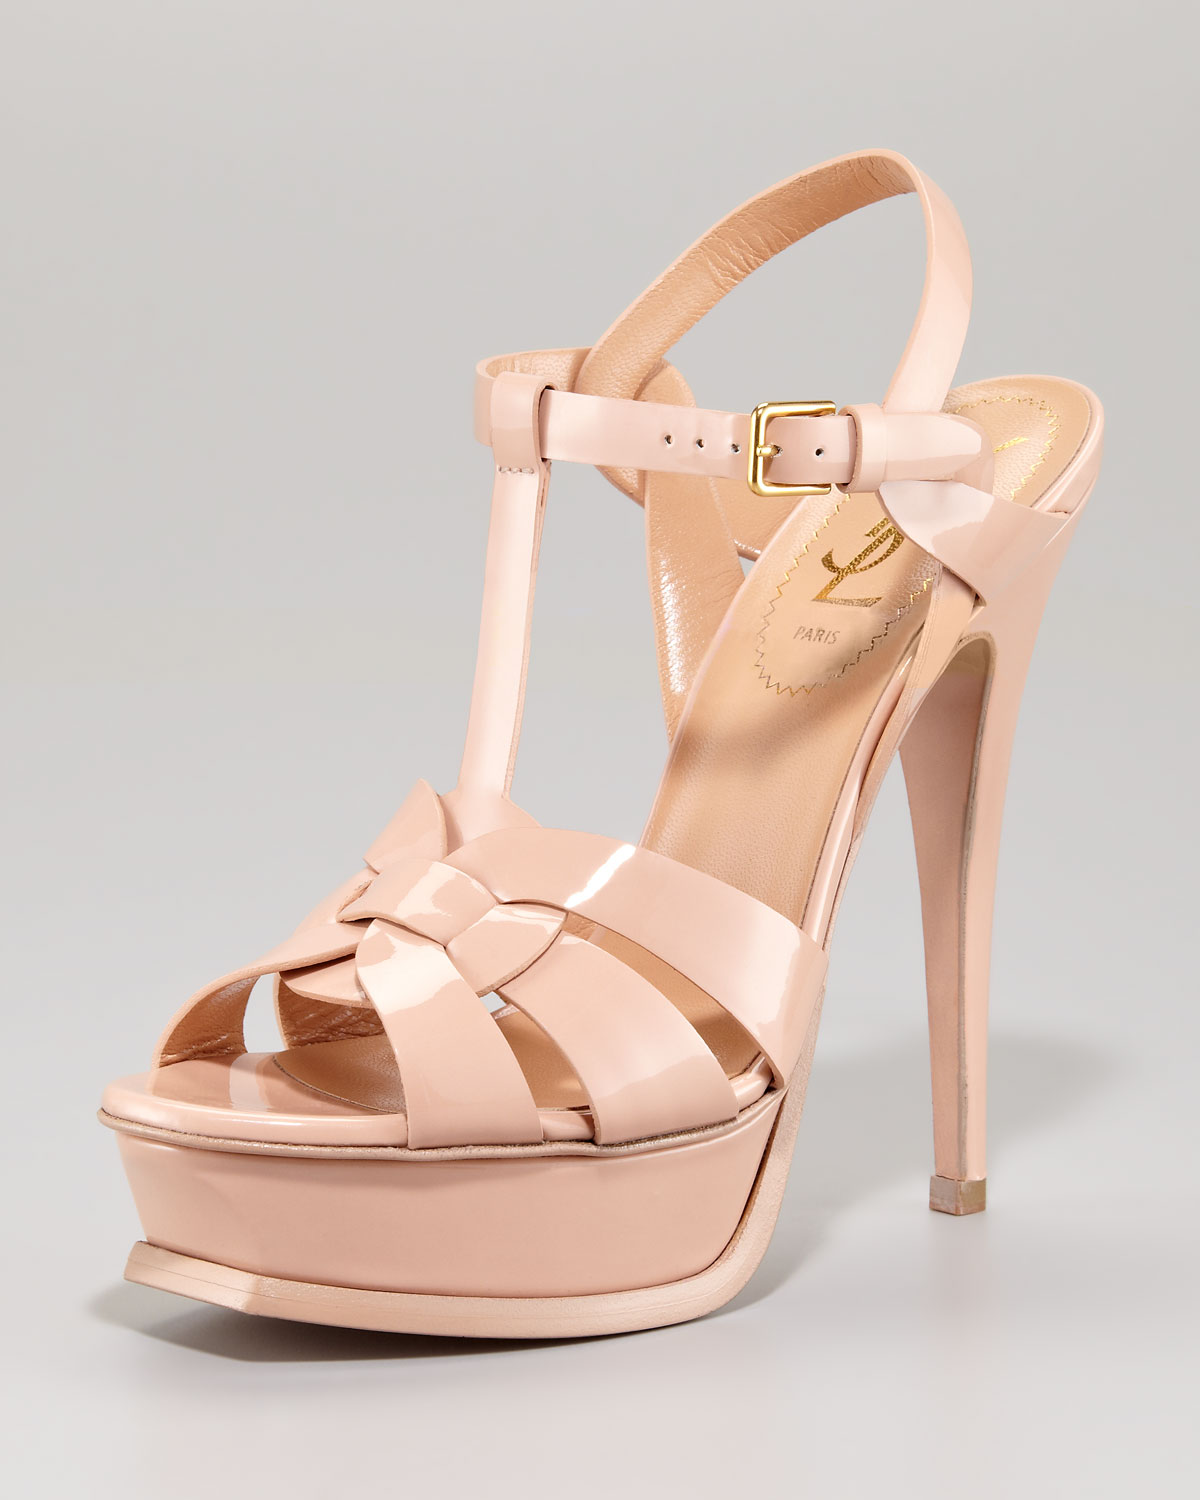 ca99c981791 clearance sandals yves saint laurent 818a0 21c88